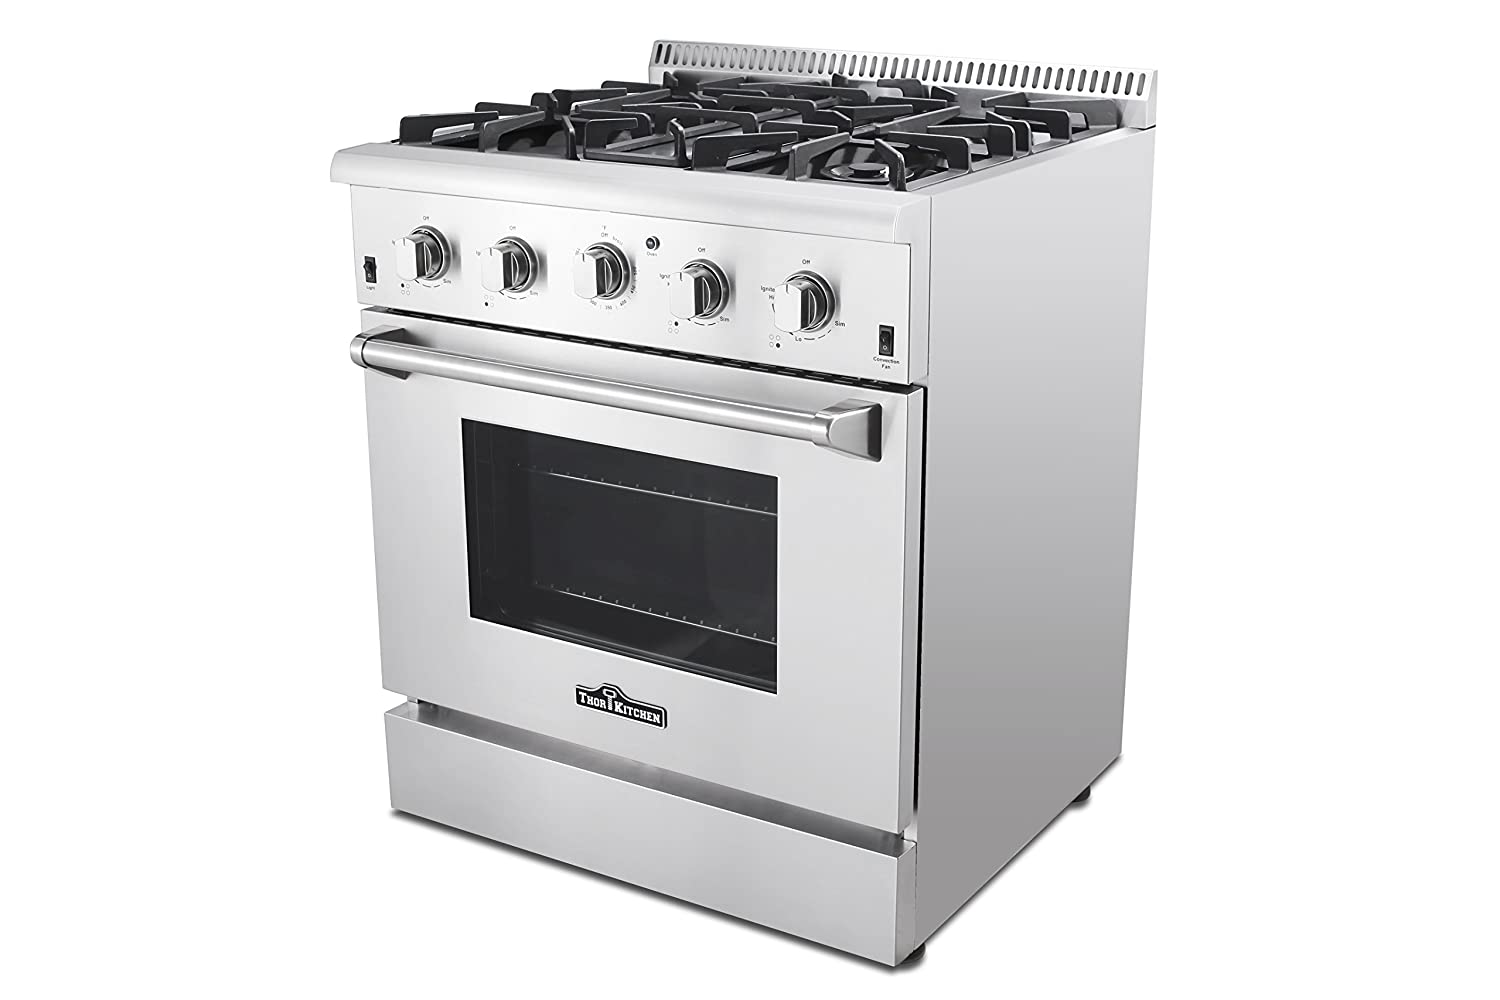 com thor kitchen hrgu standing professional com thor kitchen hrg3080u 30 standing professional style gas range 4 2 cu ft oven 4 burners convection fan cast iron grates